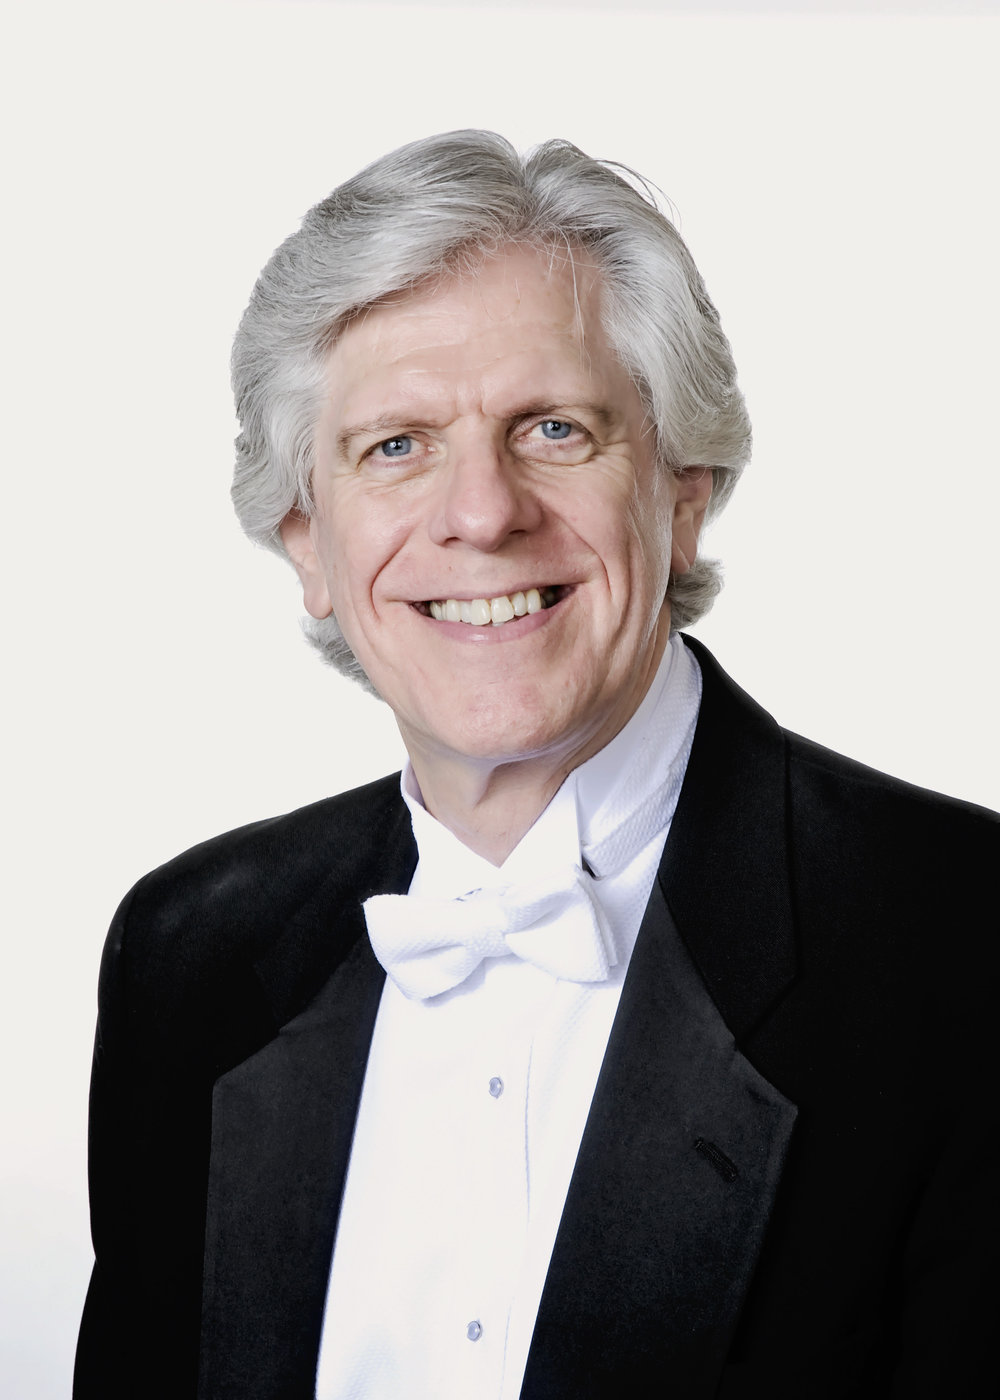 Robert Simpson Edited Headshot - Formal.jpg